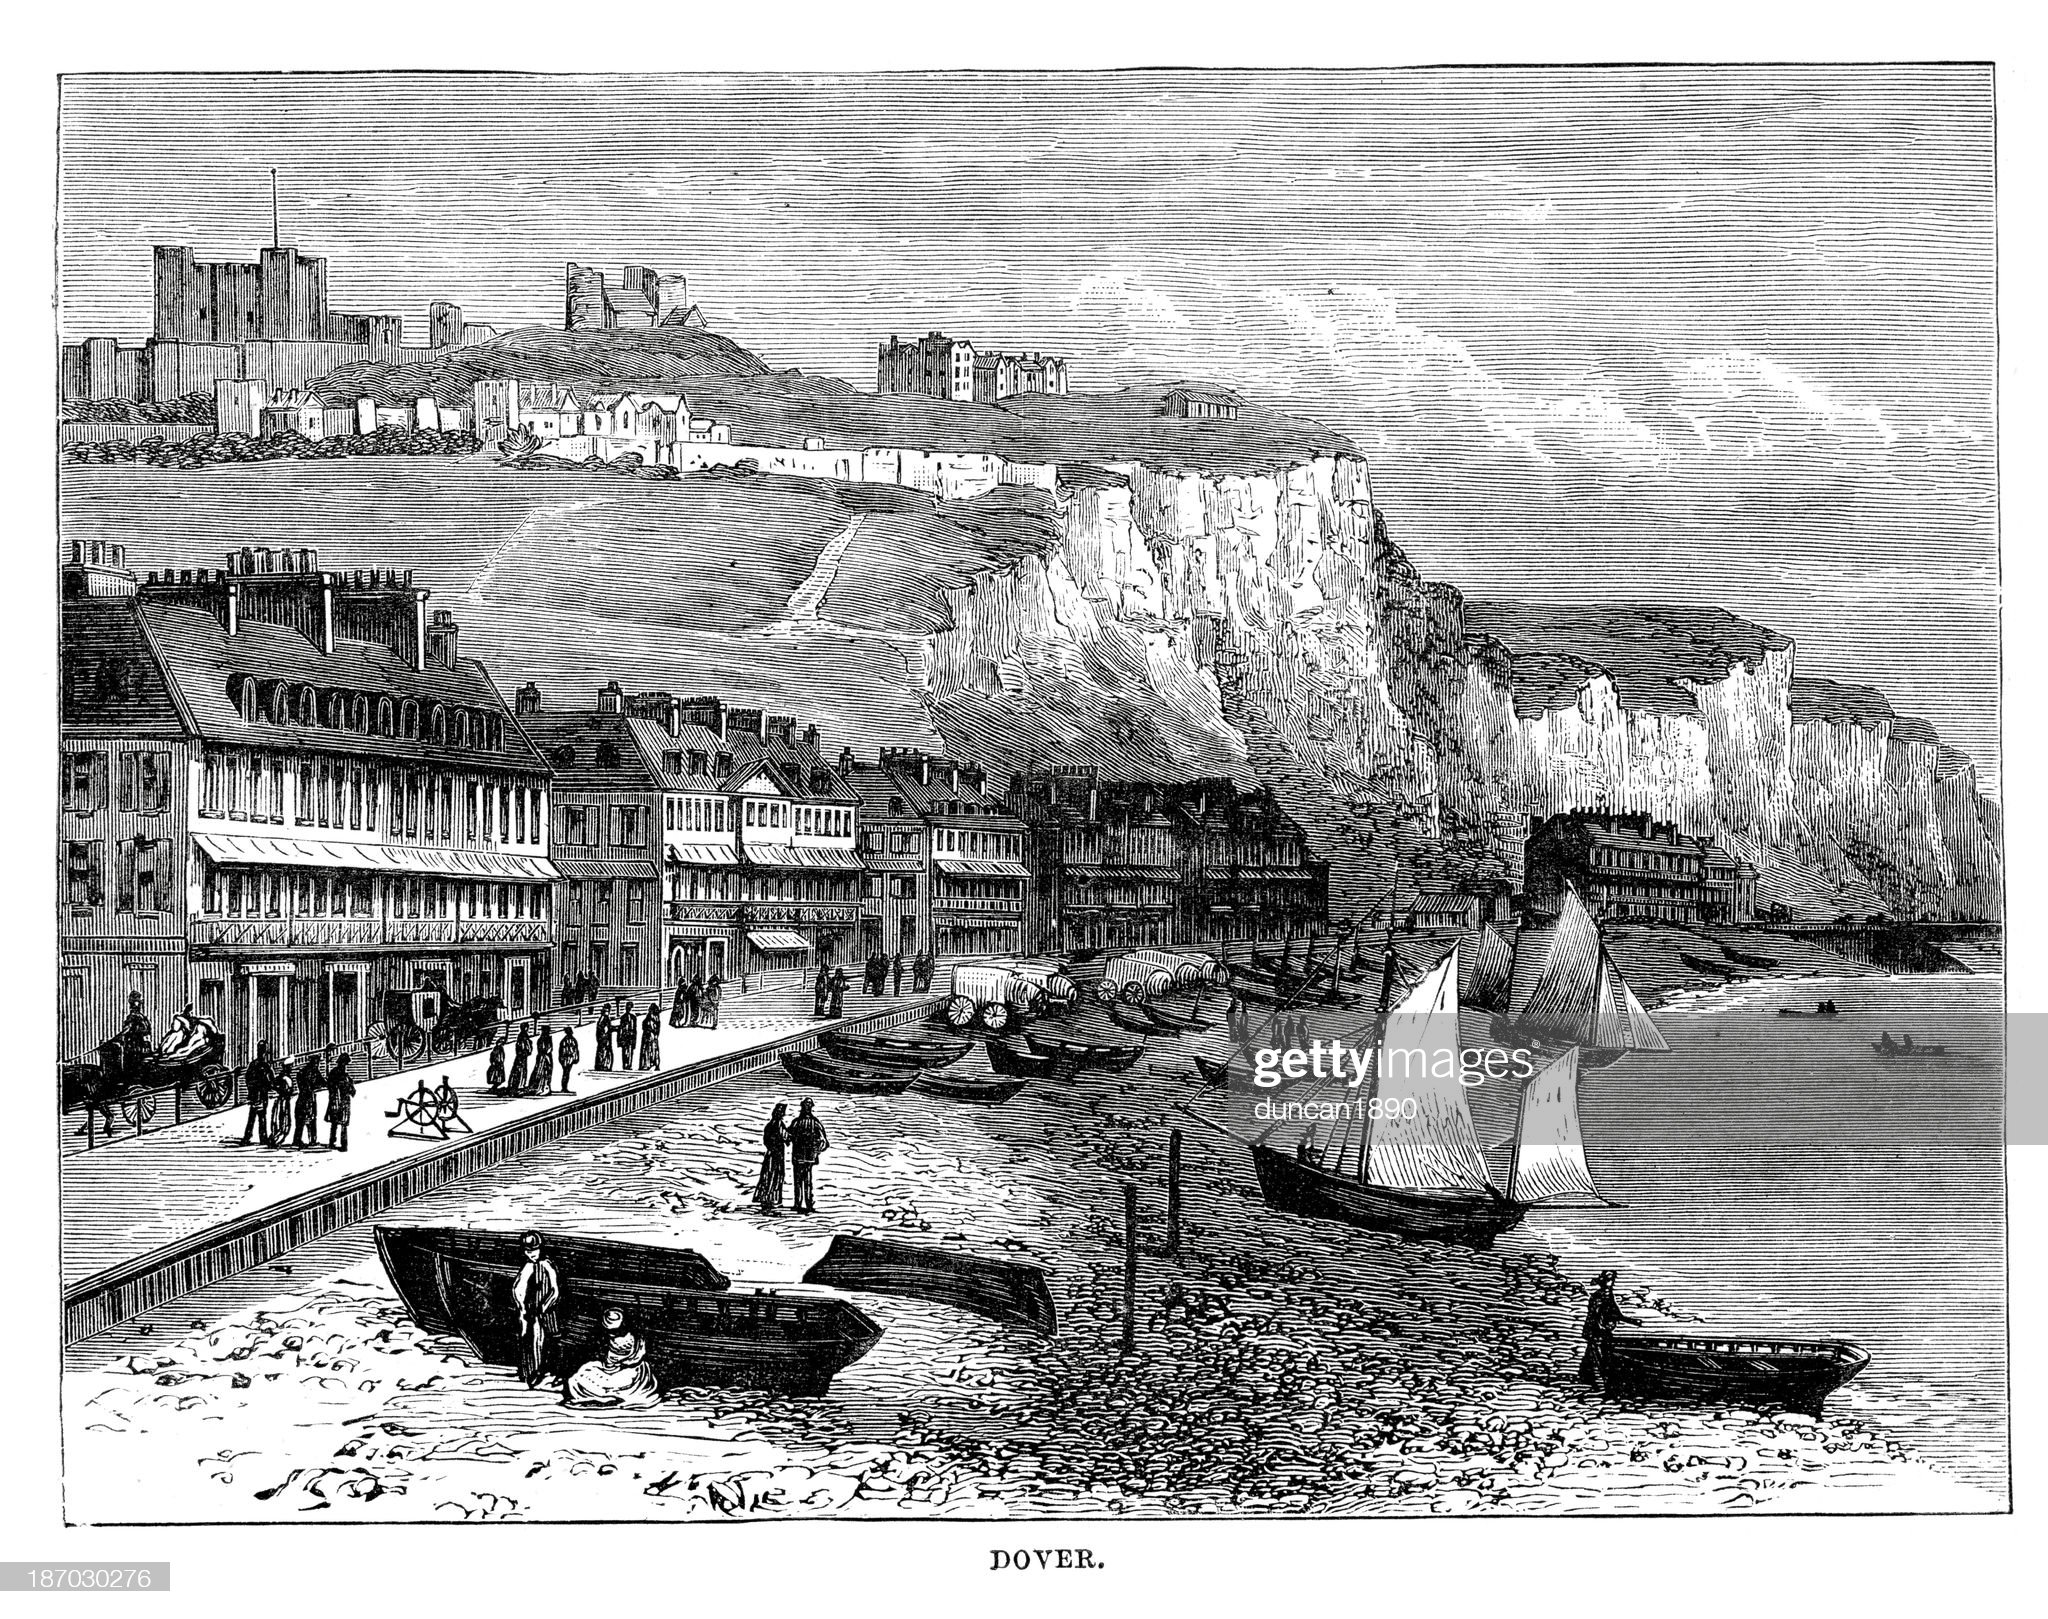 dover-in-the-19th-century-illustration-i